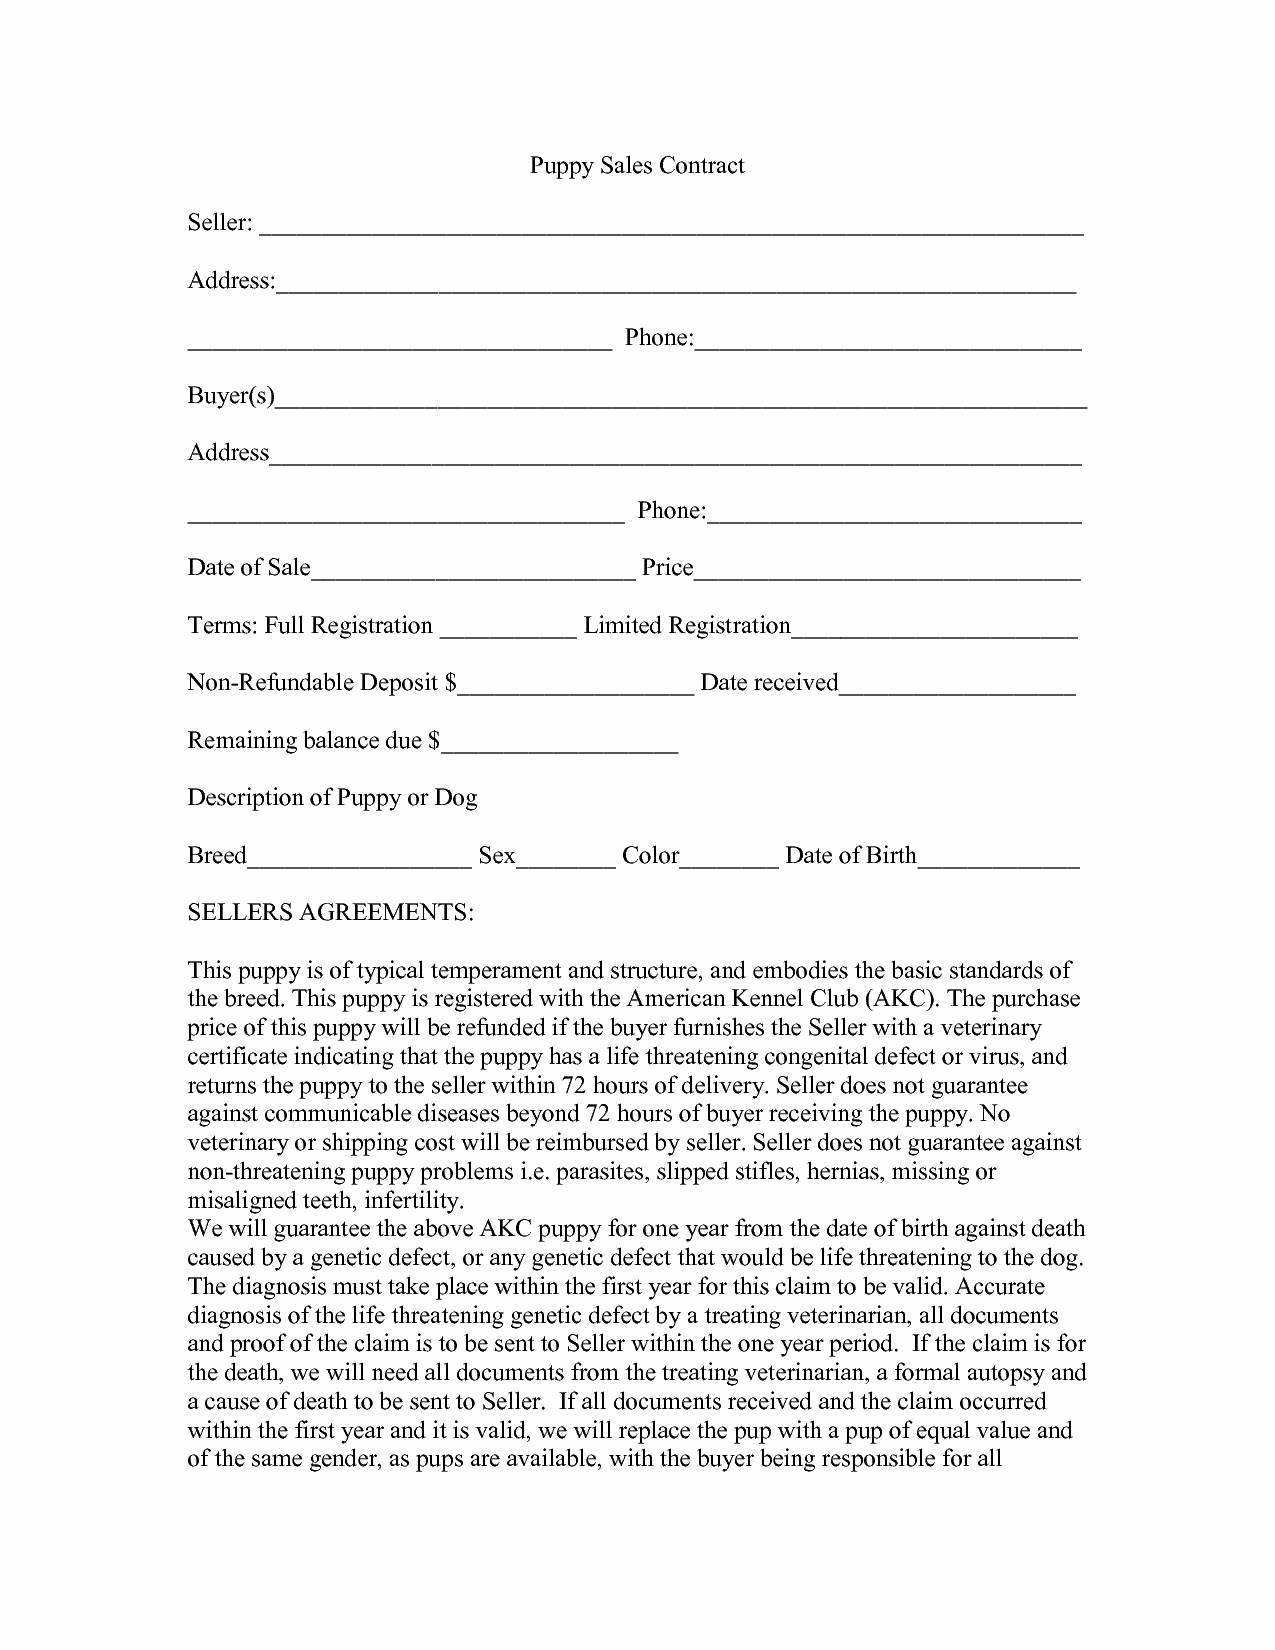 Puppy Sales Contract Template  Pictimilitude Pertaining To Puppy Contract Templates